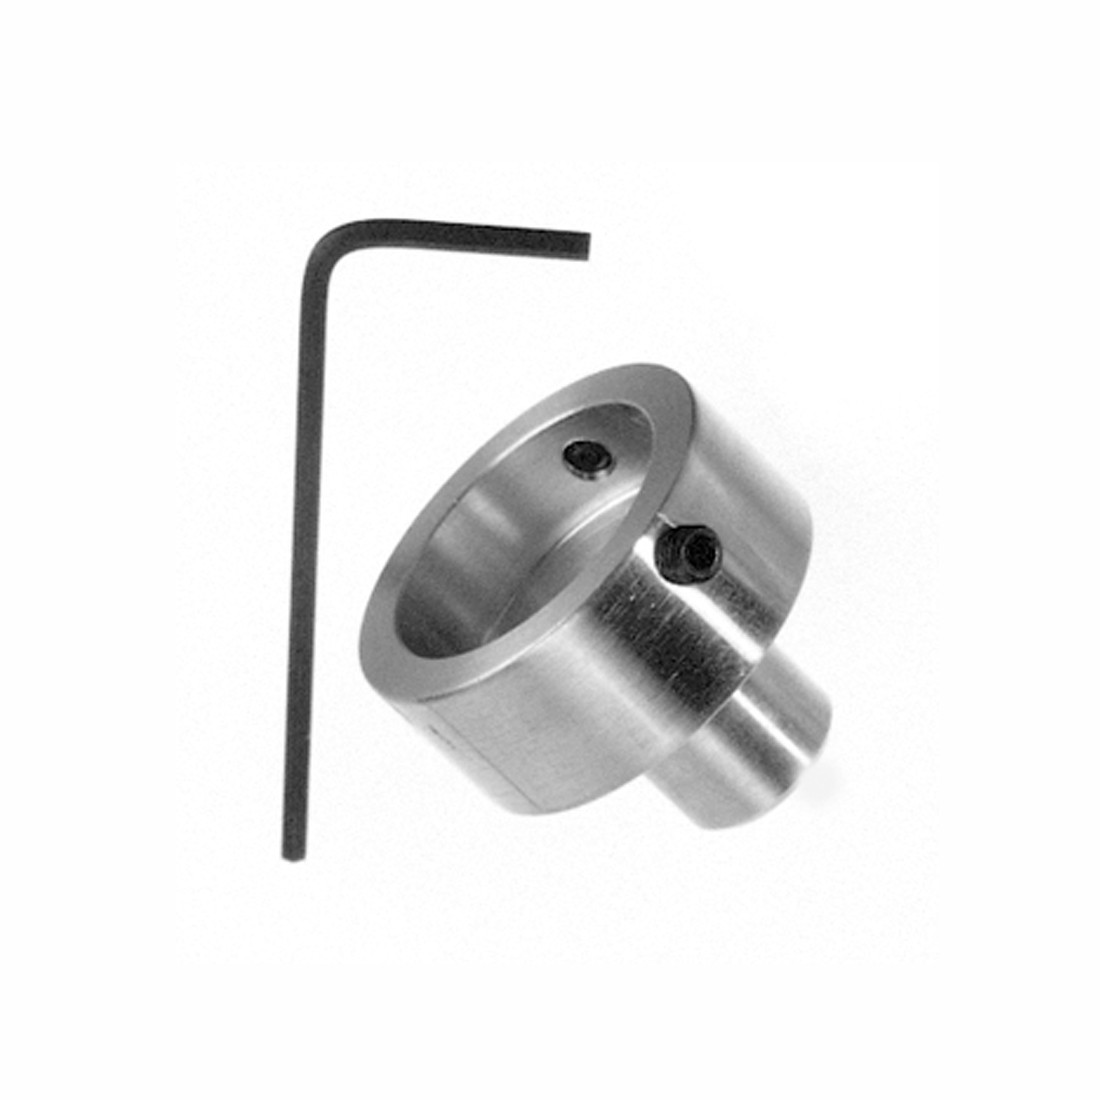 JBA Chuck, 11 x 11mm shaft